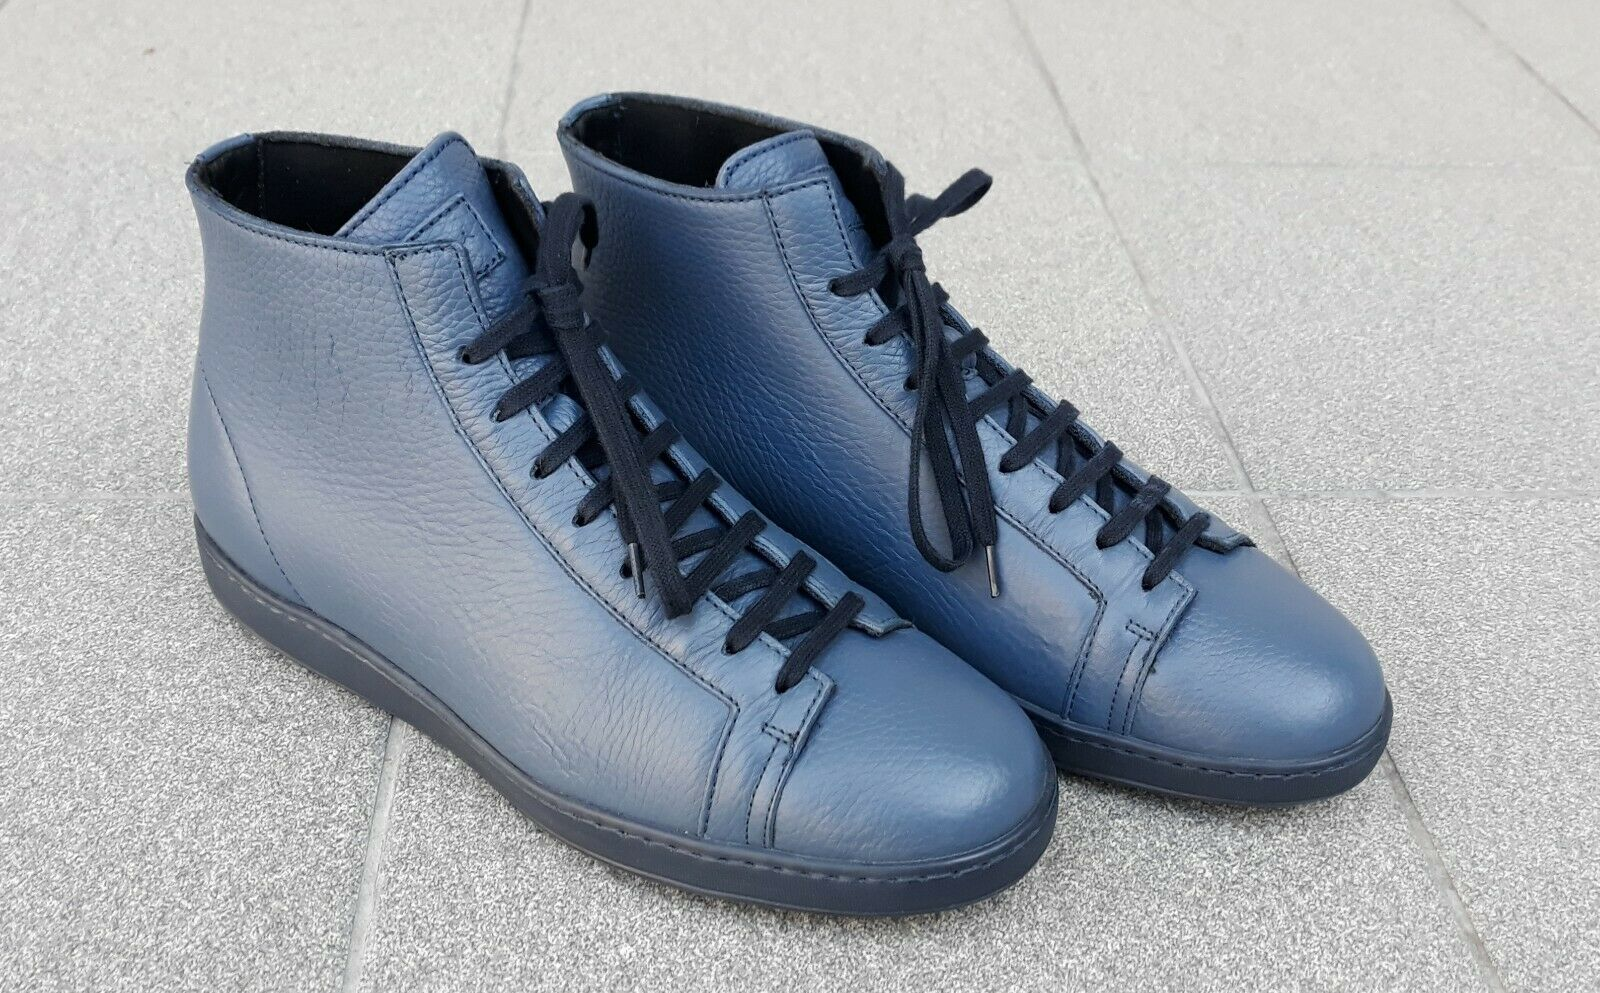 SANTONI - Men's Casual Leather High Top Sneaker Lace Up . Size 8,5